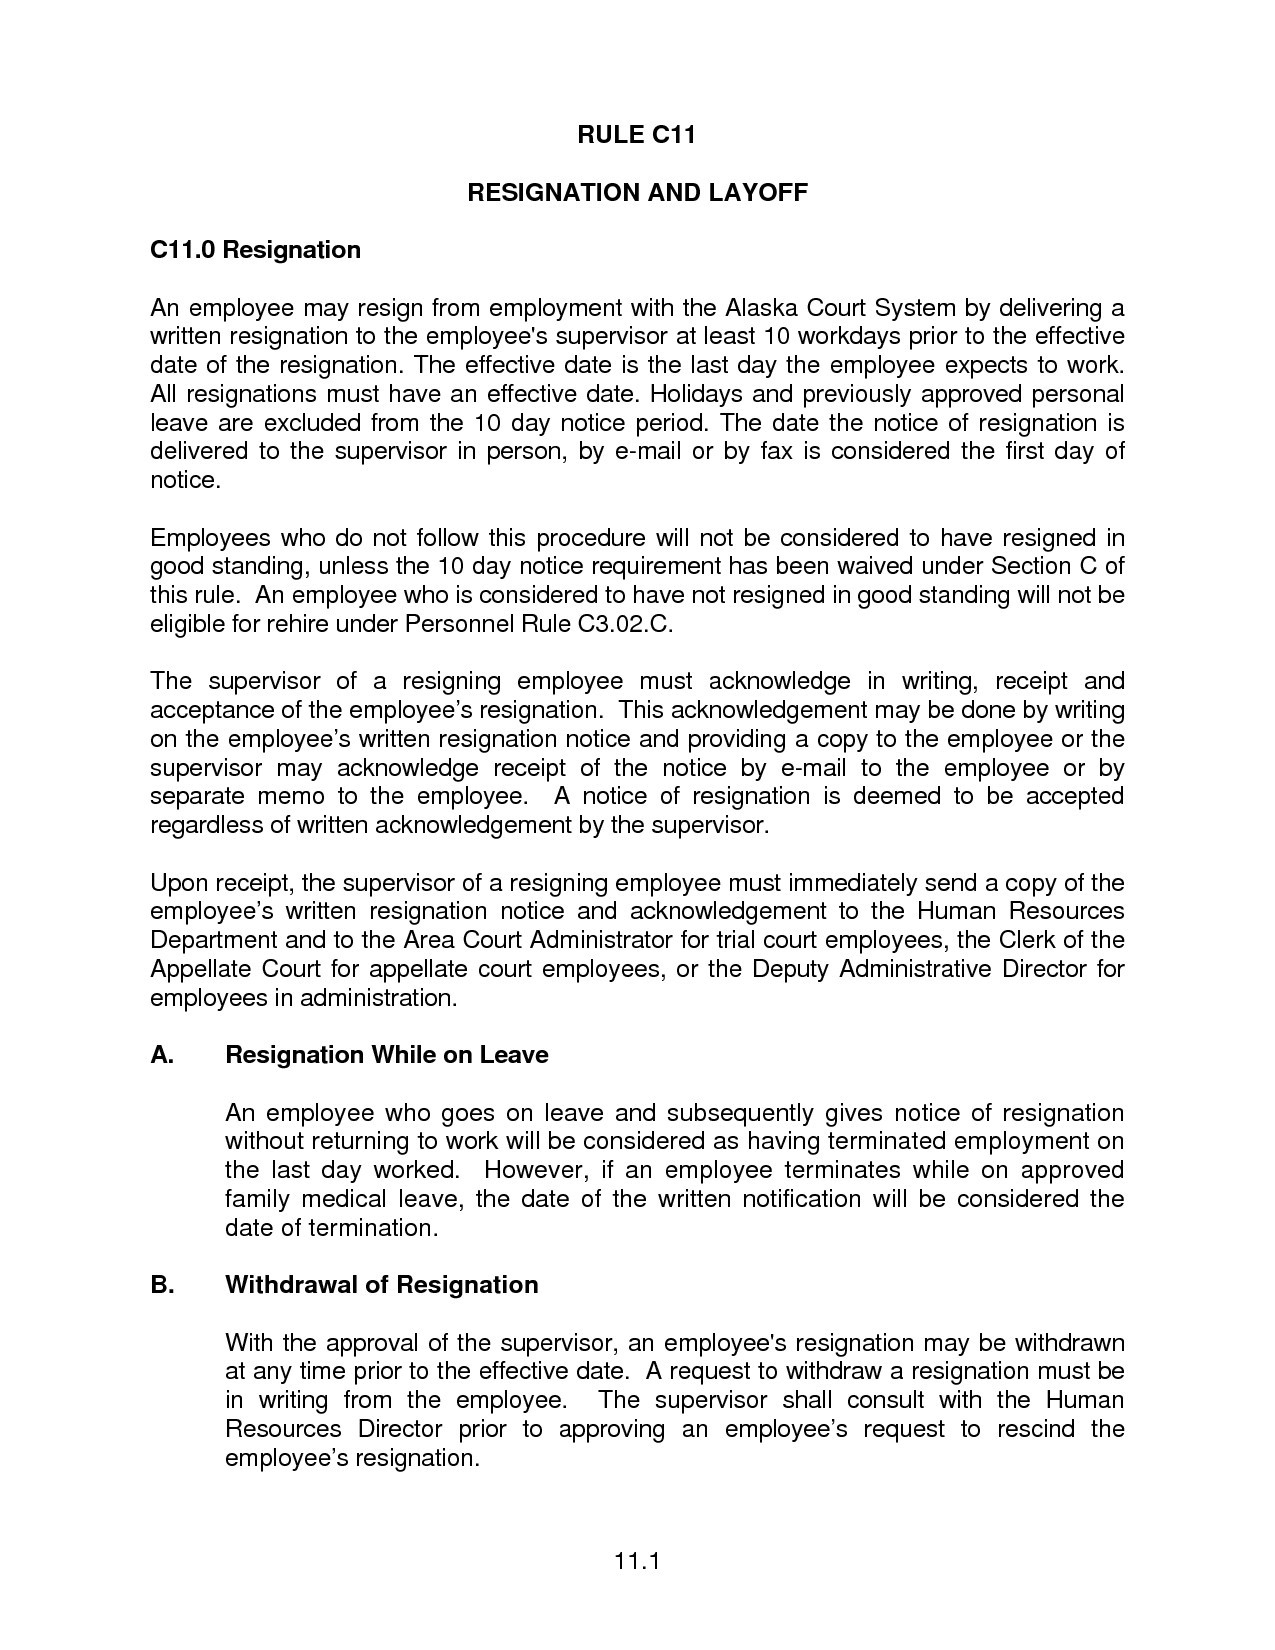 Probation Termination Letter Template - Termination Letter format without Notice Period Valid Resignation